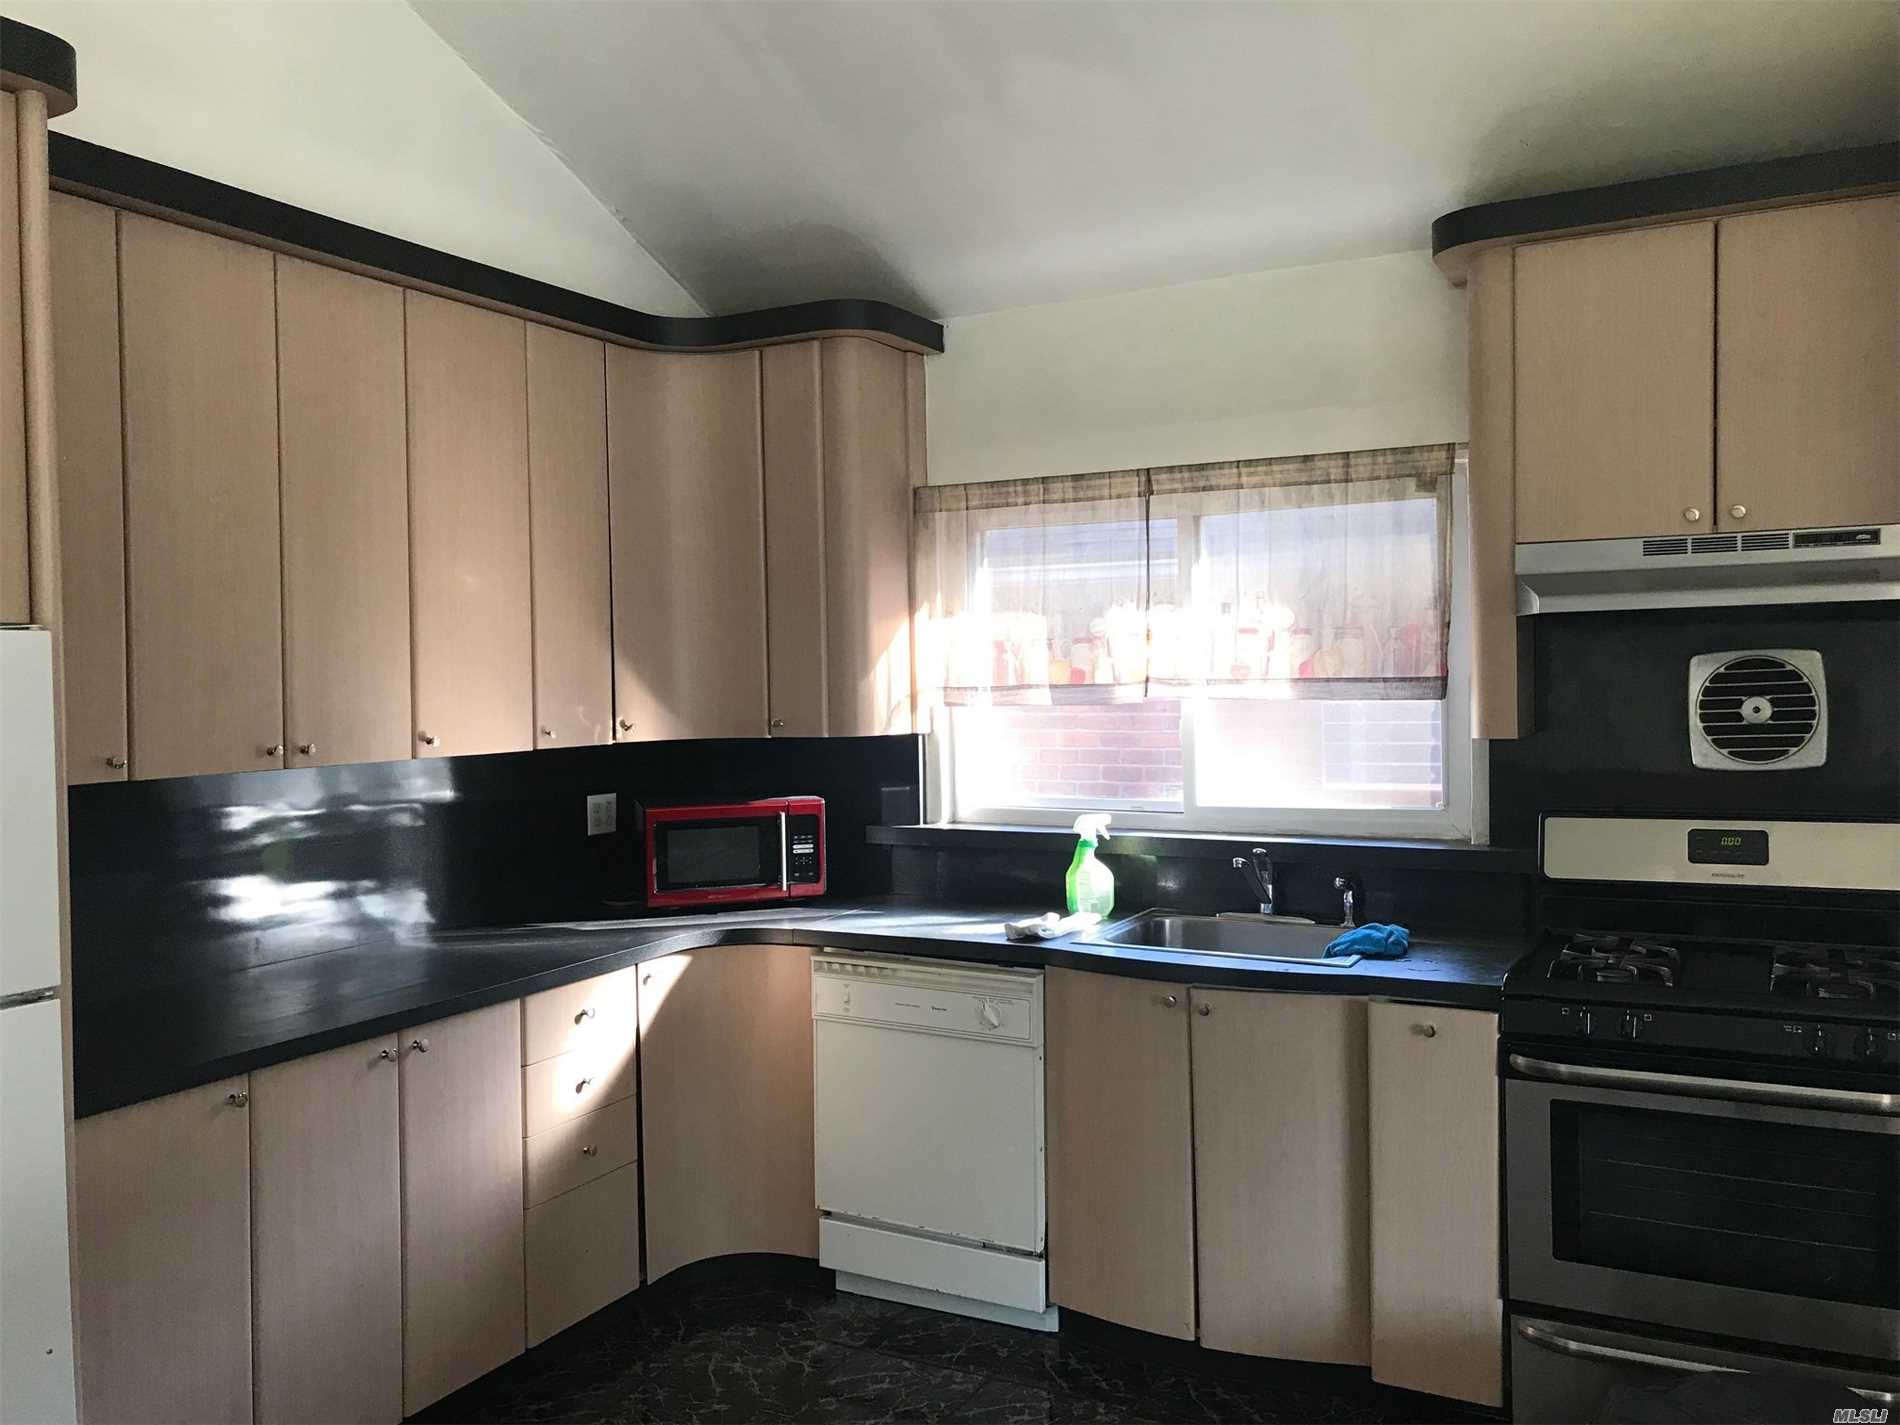 Spacious Inviting Home. Beautiful New Kitchen, Stainless Steel Appliances. Absentee Landlord.